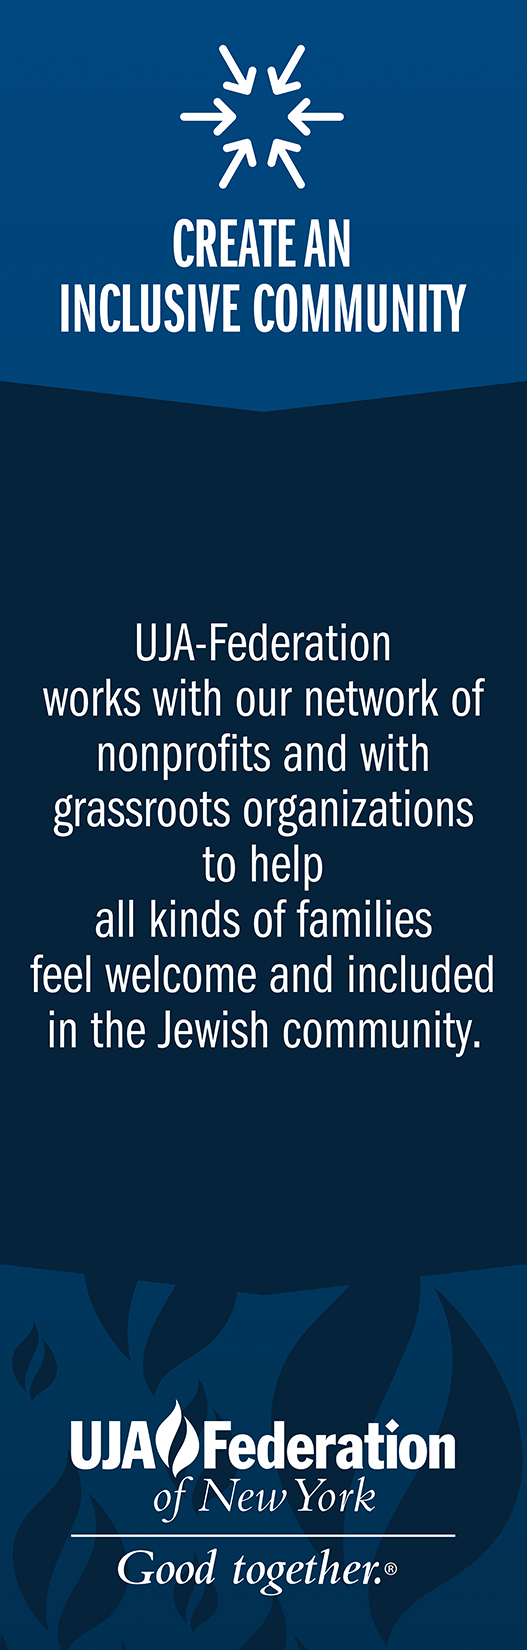 UJA Inclusive Community Banner v02r06 BACK.jpg